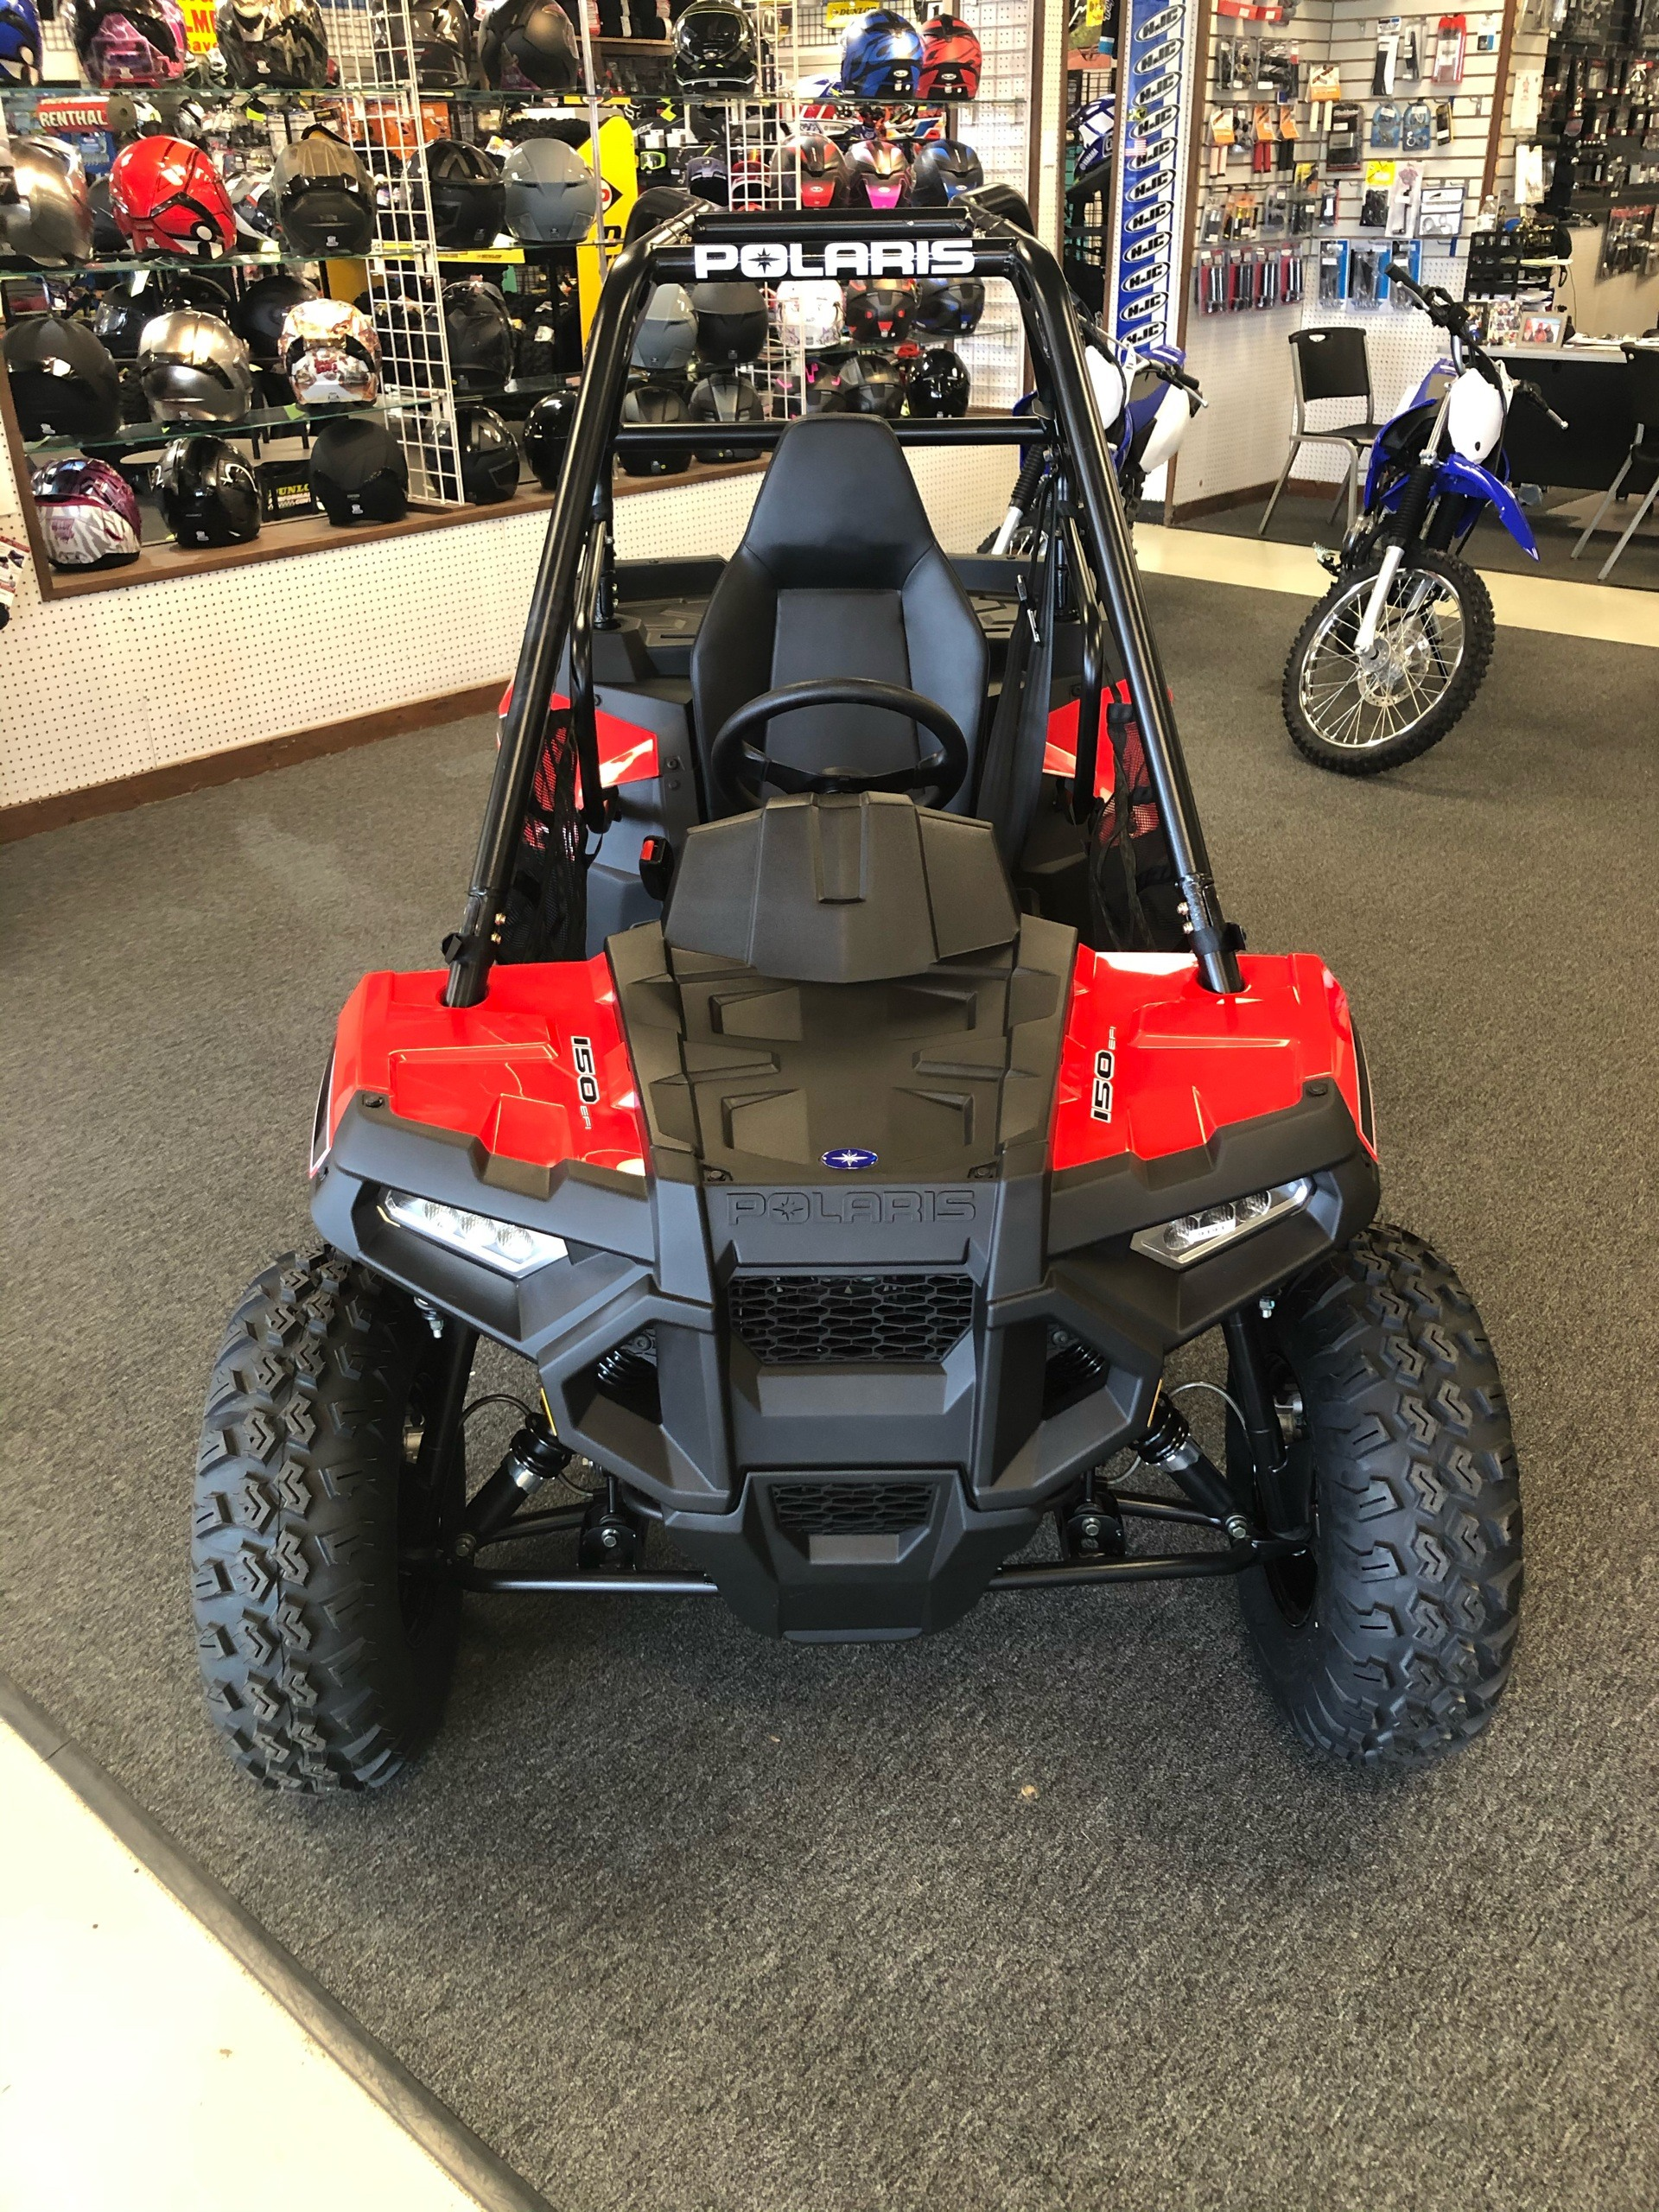 2019 Polaris Ace 150 EFI in Elkhart, Indiana - Photo 2